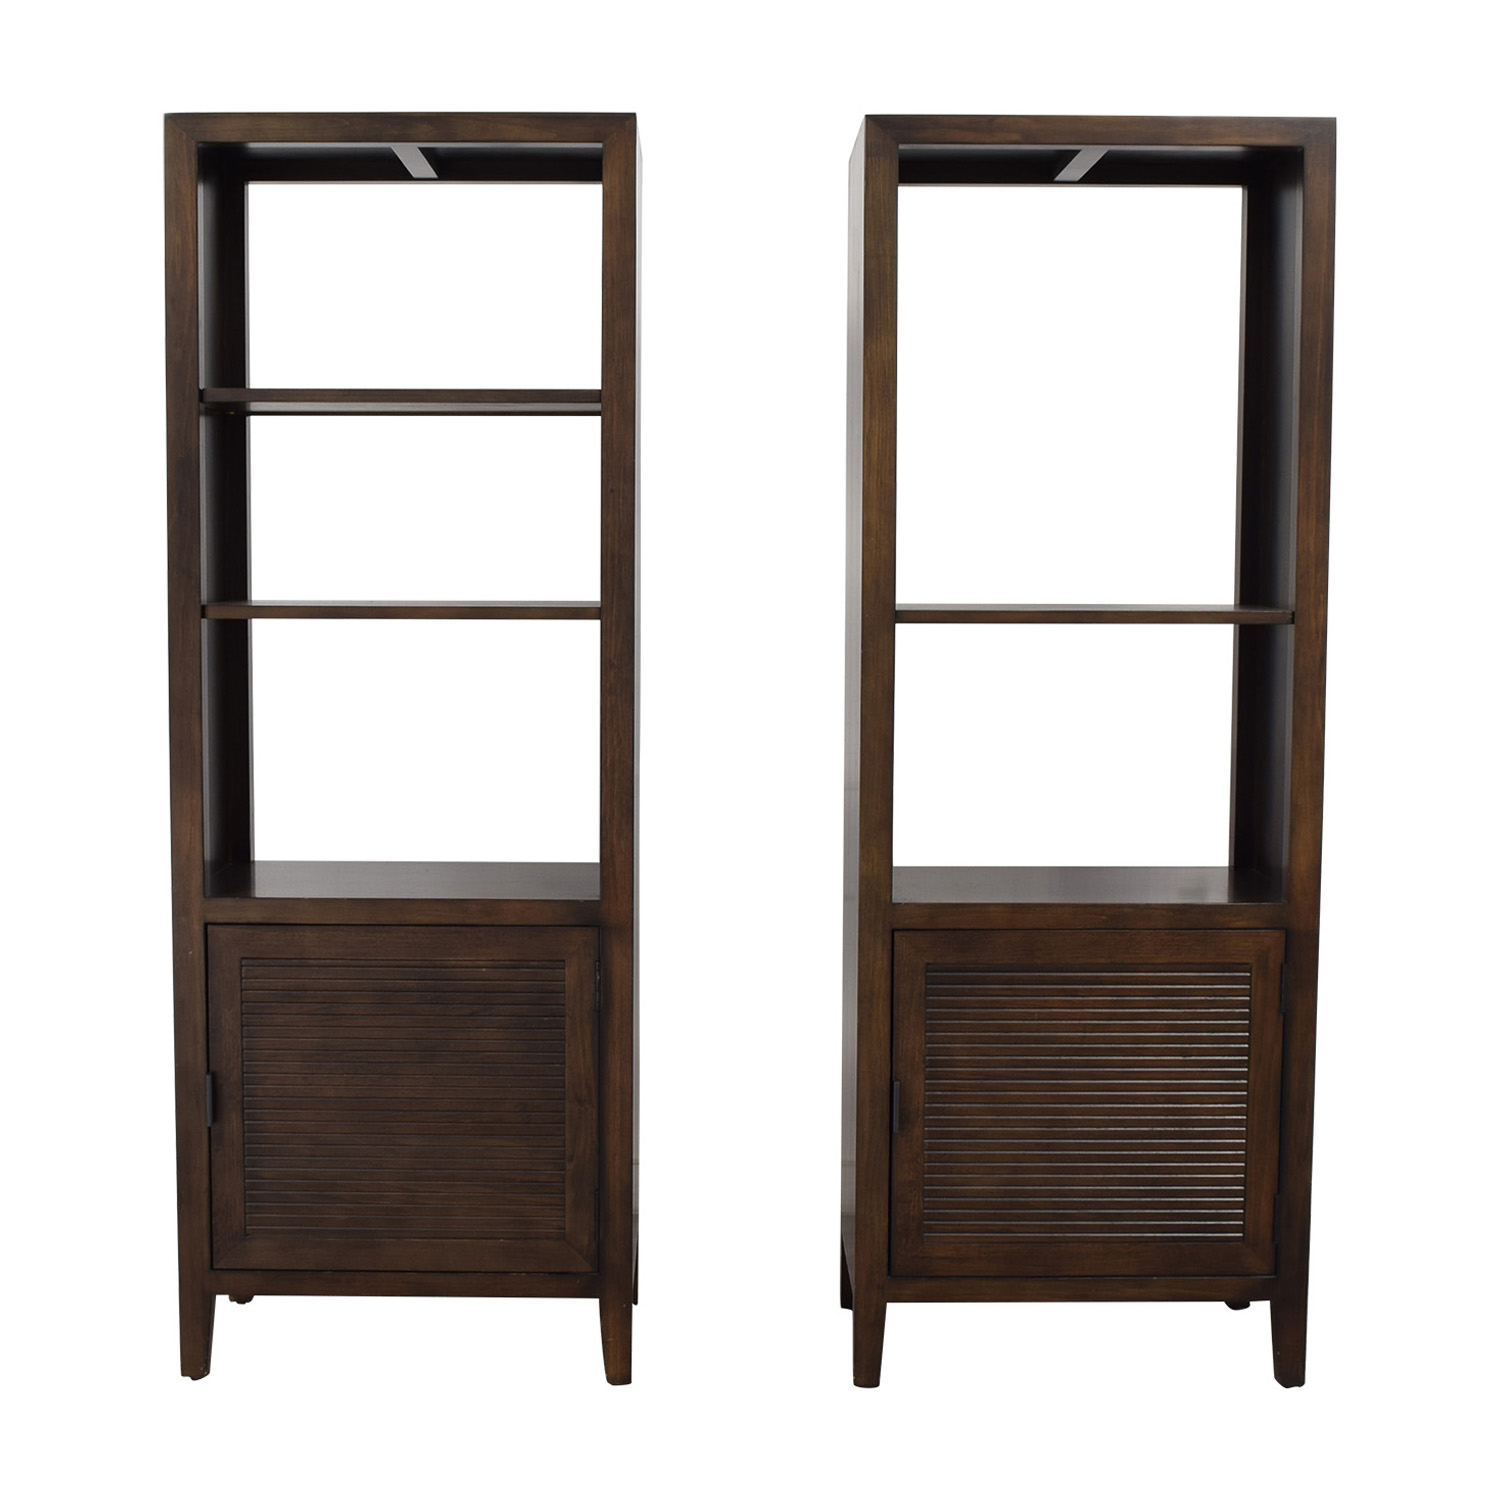 Crate & Barrel Crate & Barrel Bookshelves on sale